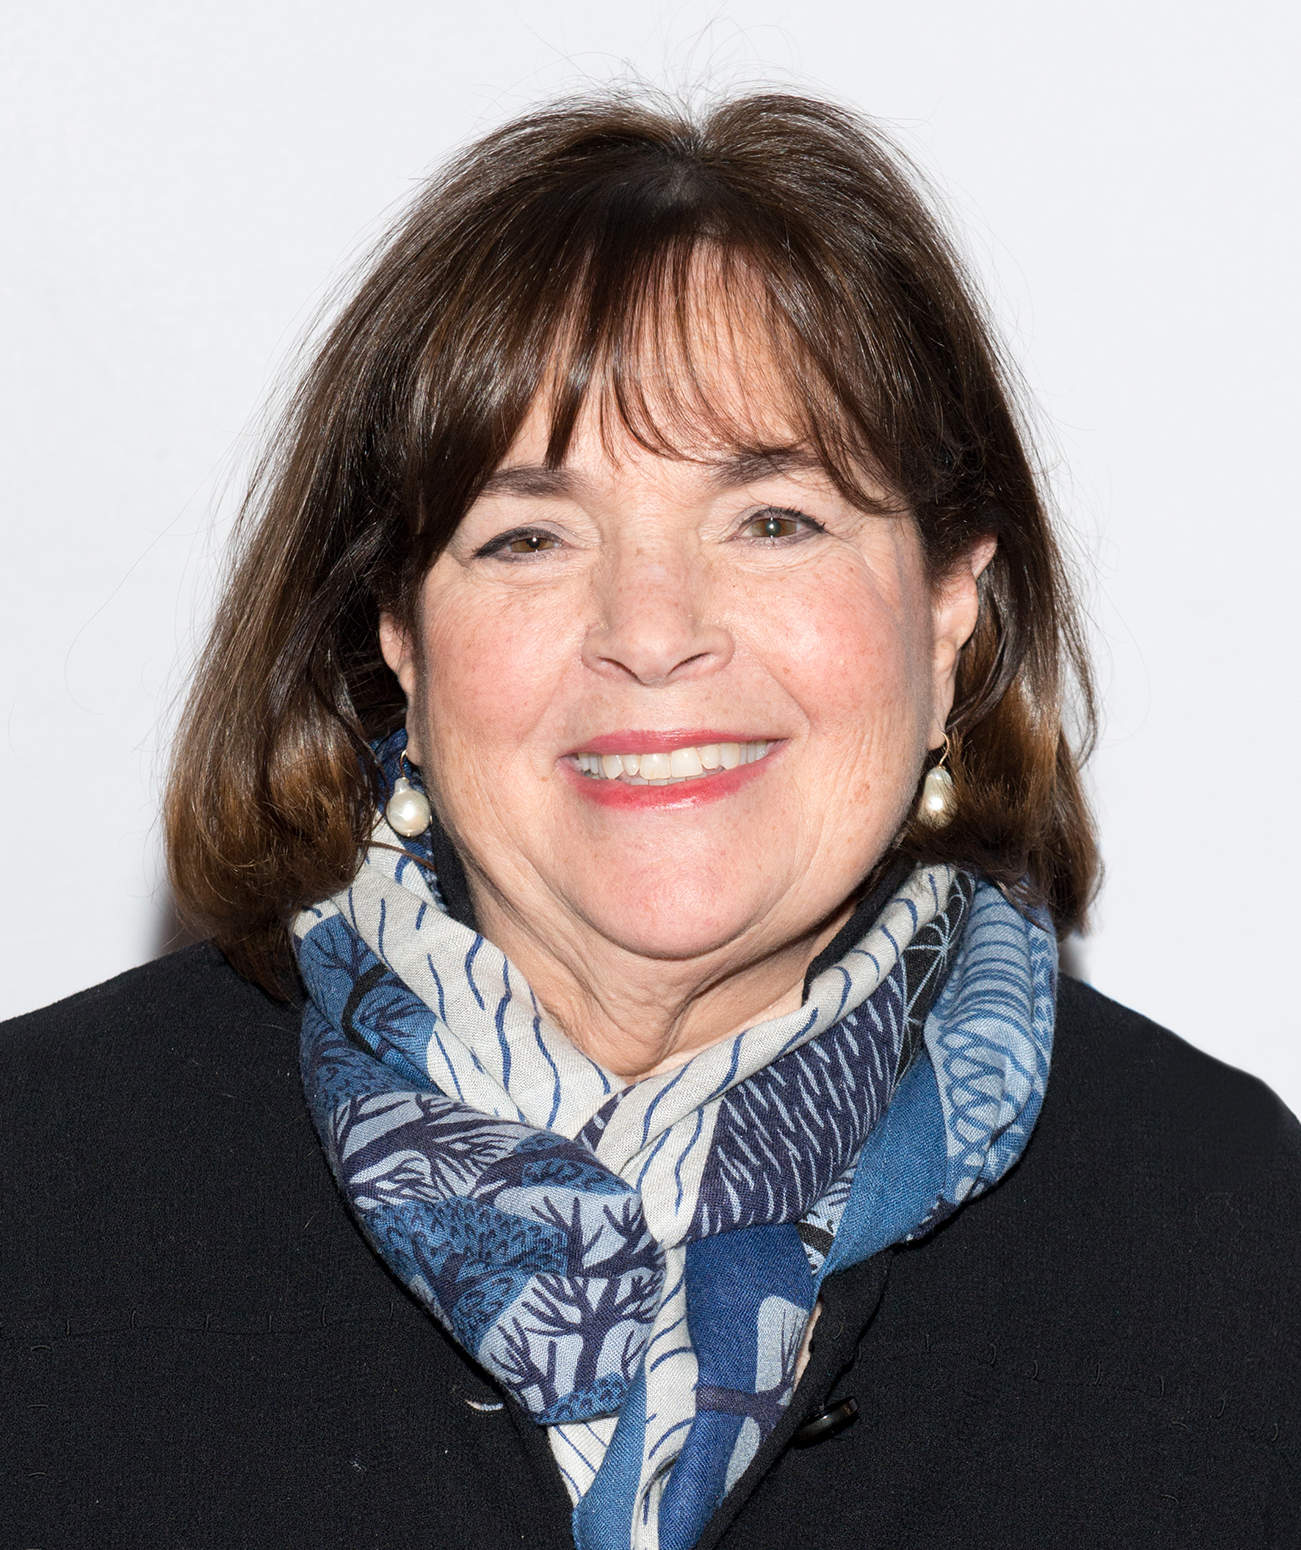 Ina Garten ina garten talks yoga, martha stewart and taylor swift on 'how to